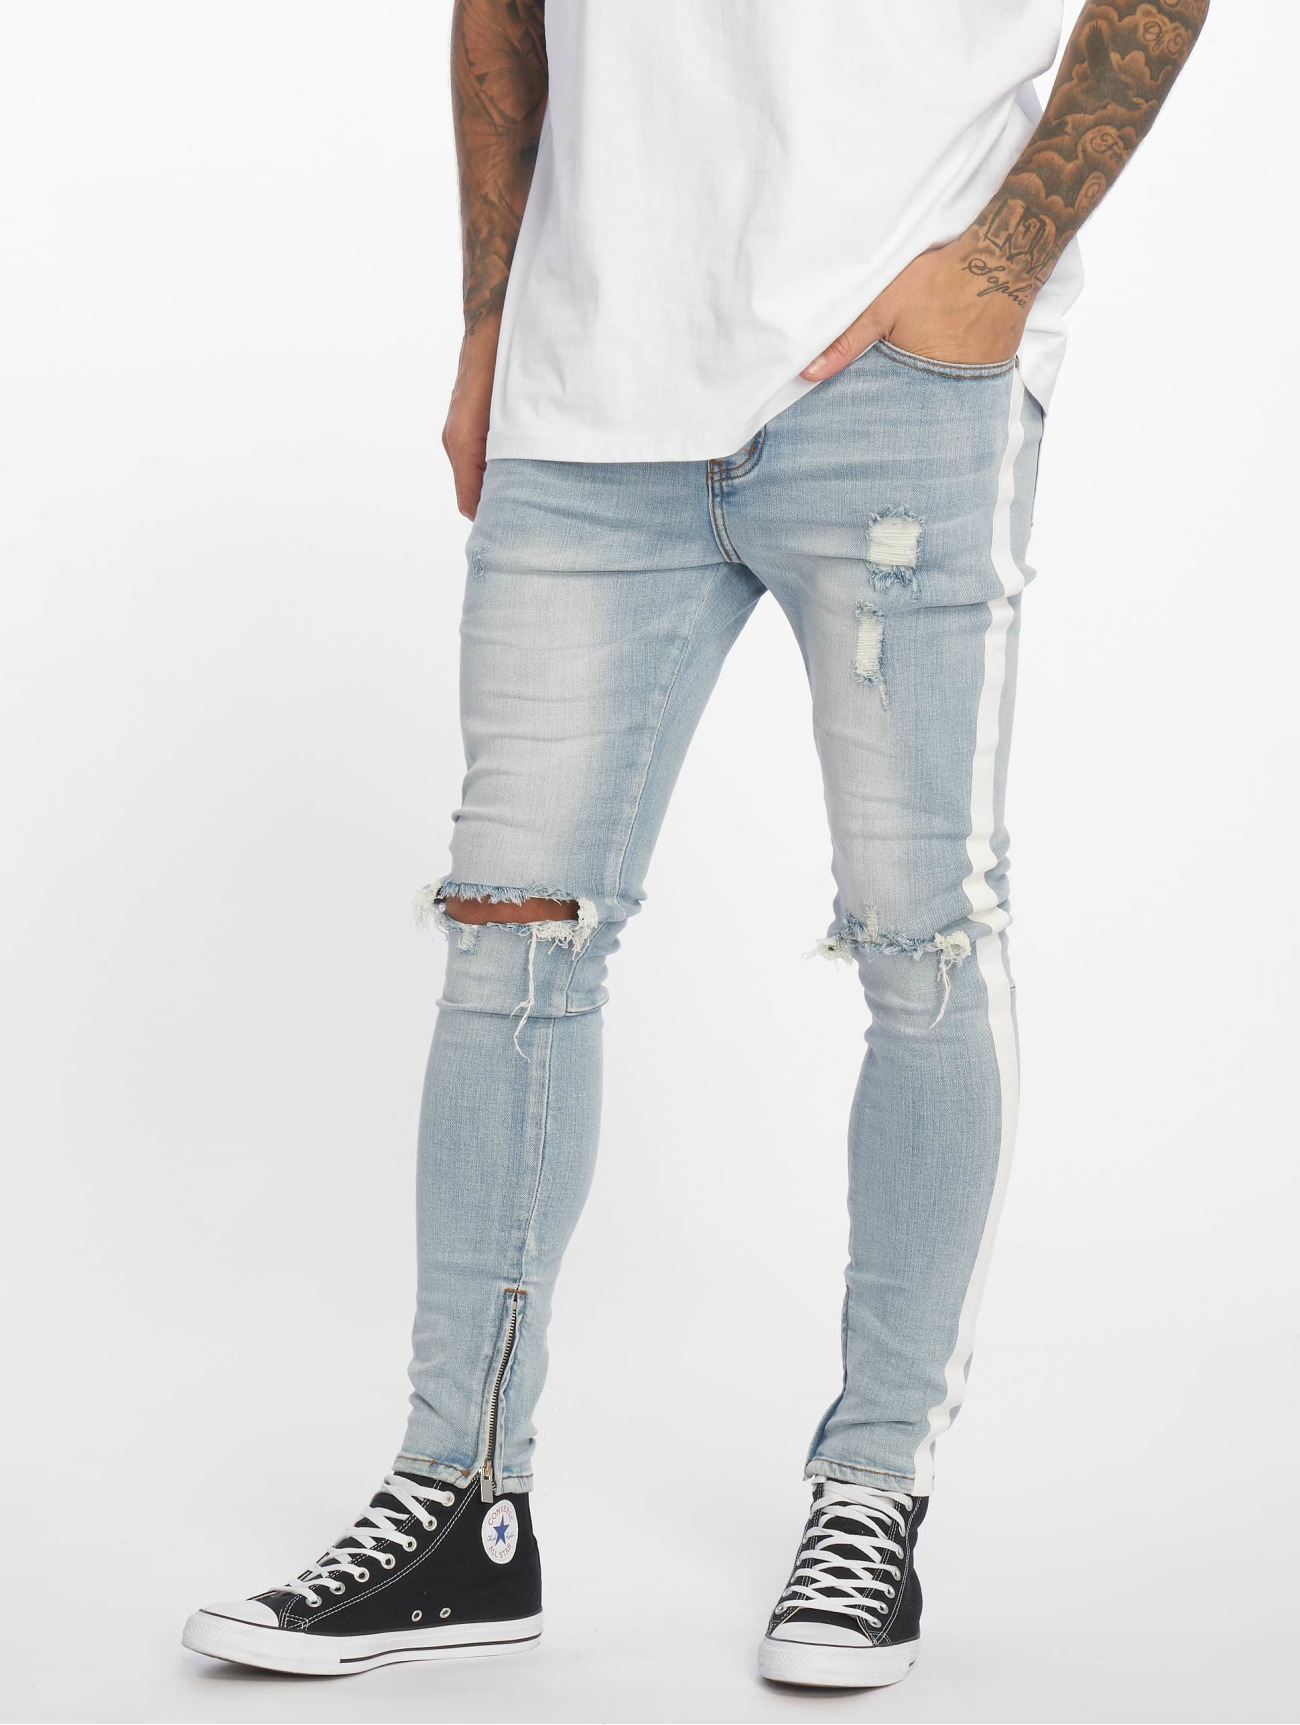 Sixth June  Stripes   bleu Homme Jean skinny  639978 Homme Jeans